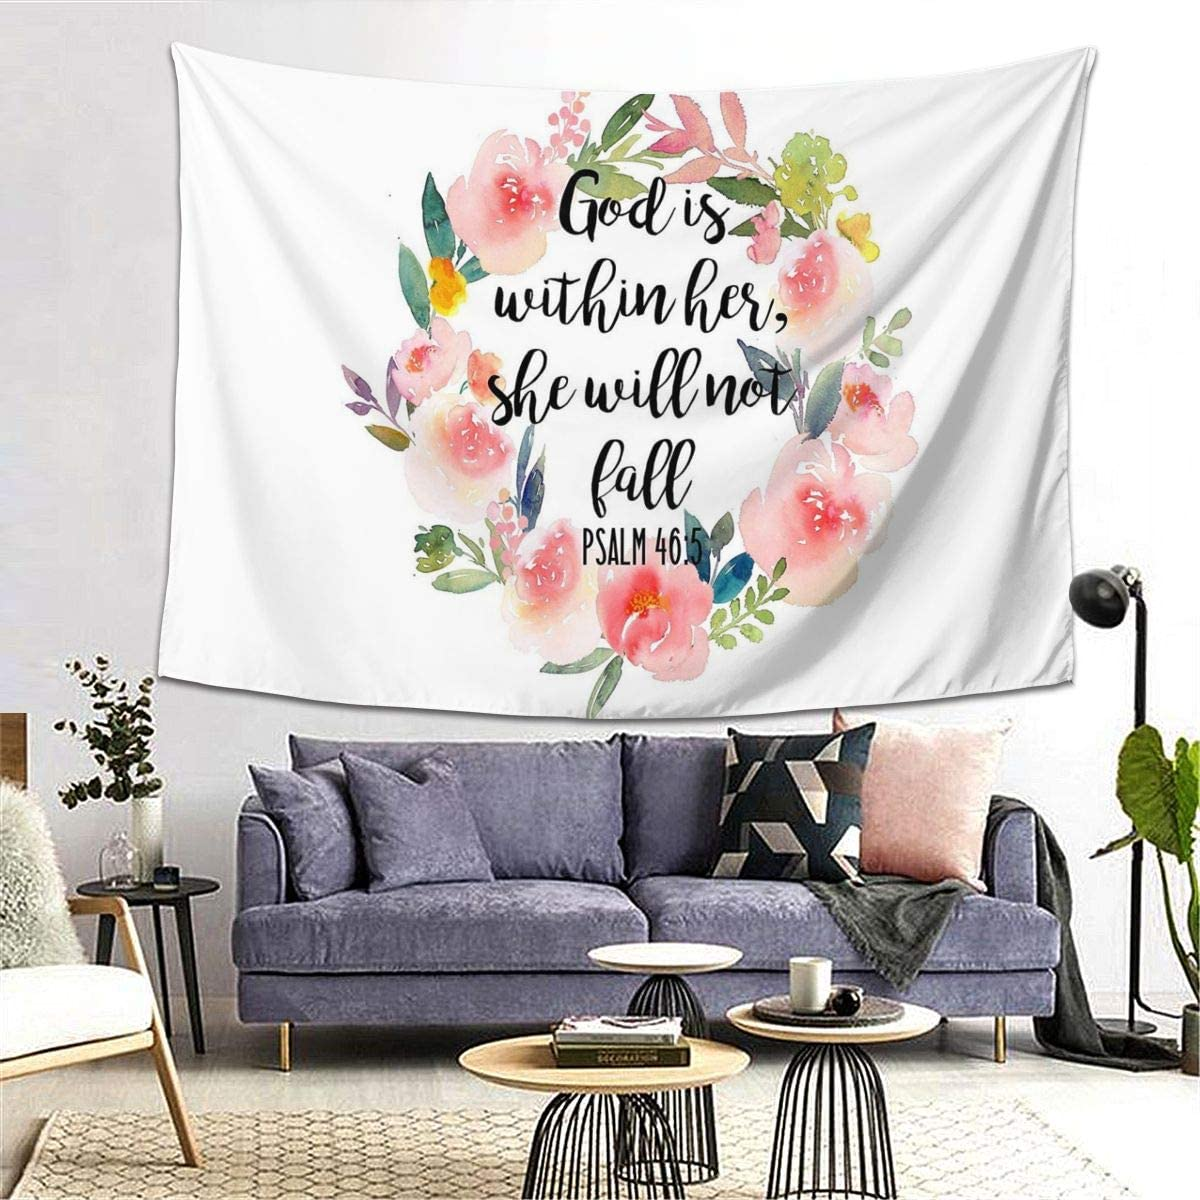 Amazon Com Marrtly Bible Verses God Is Within Her She Will Not Fall Psalm 46 Tapestry Wall Hanging Decorative Wall Art Tapestries For Bedroom Living Room Home Decoration 80 X60 Inches Home Kitchen